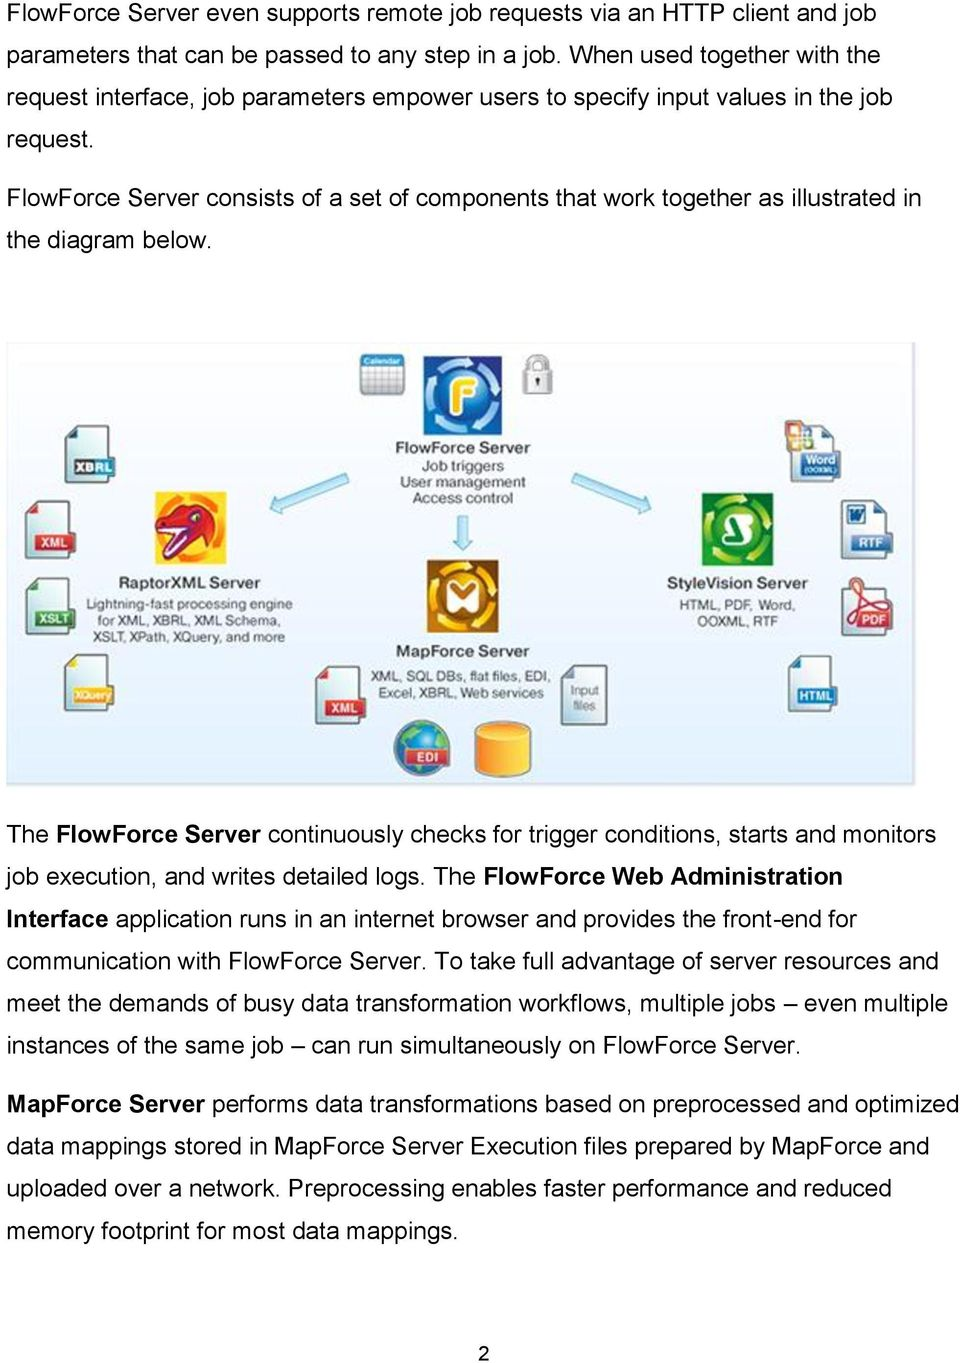 FlowForce Server consists of a set of components that work together as illustrated in the diagram below.